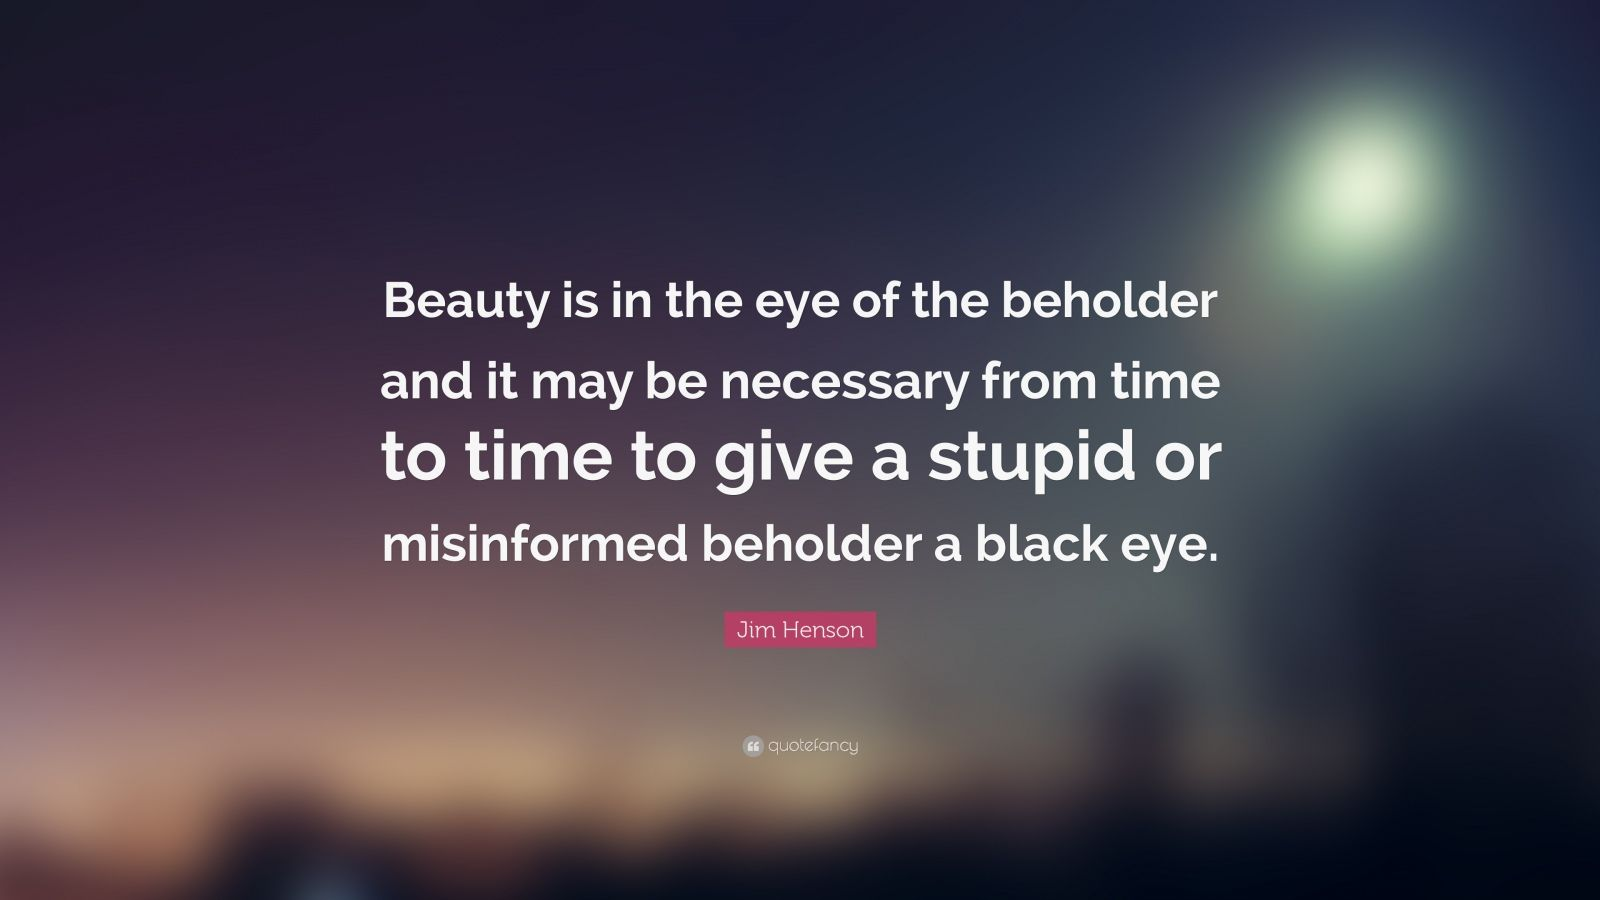 essay beauty eye beholder Open document below is an essay on beauty is in the eye of the beholder from anti essays, your source for research papers, essays, and term paper examples.